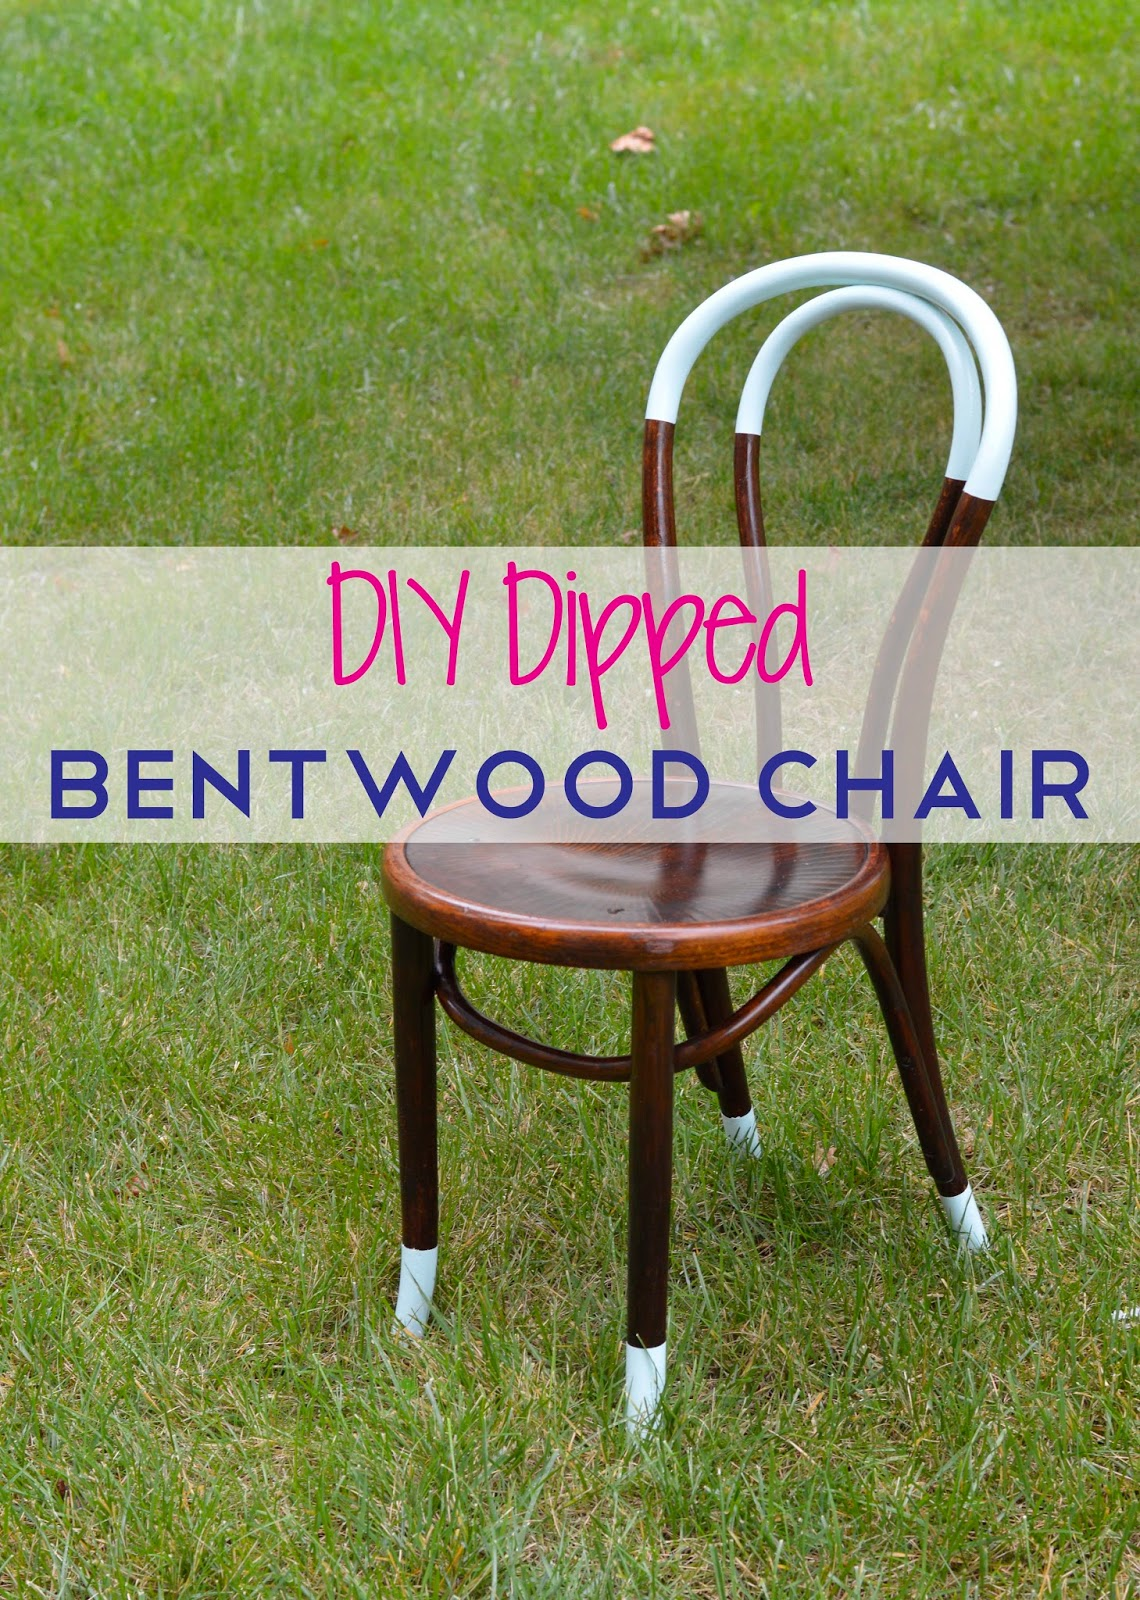 Before And After: DIY Dipped Bentwood Chair